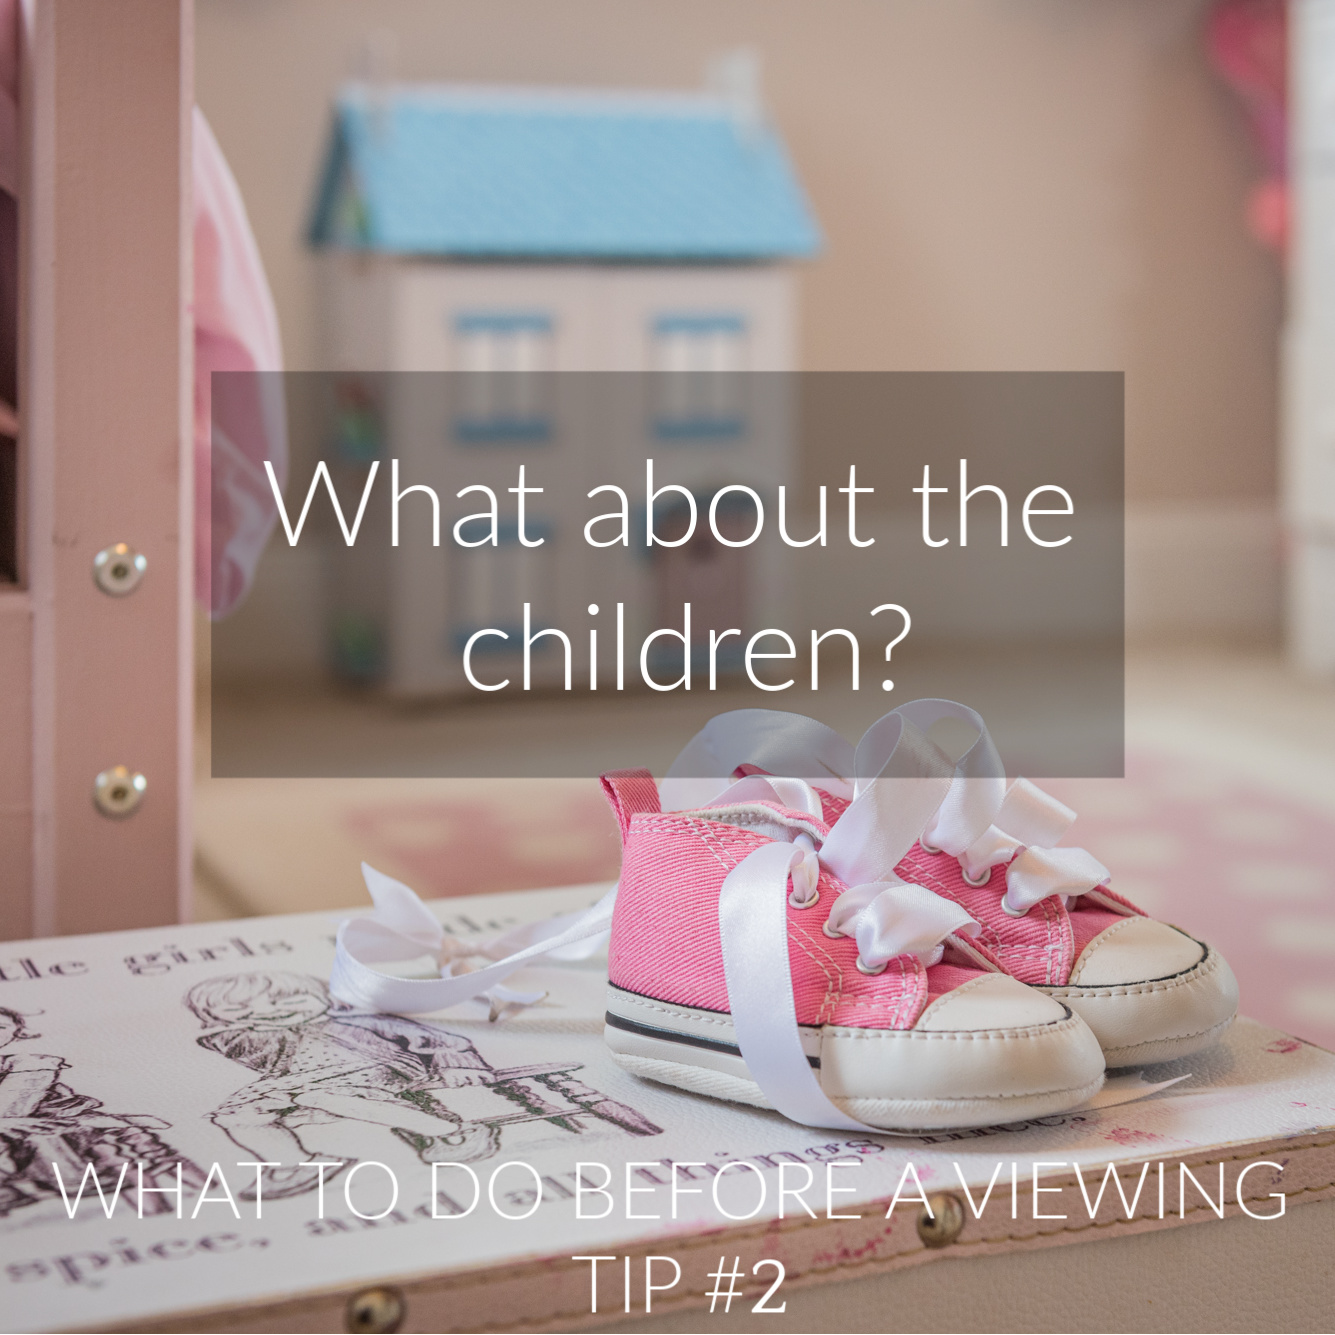 tg2-what-about-the-children